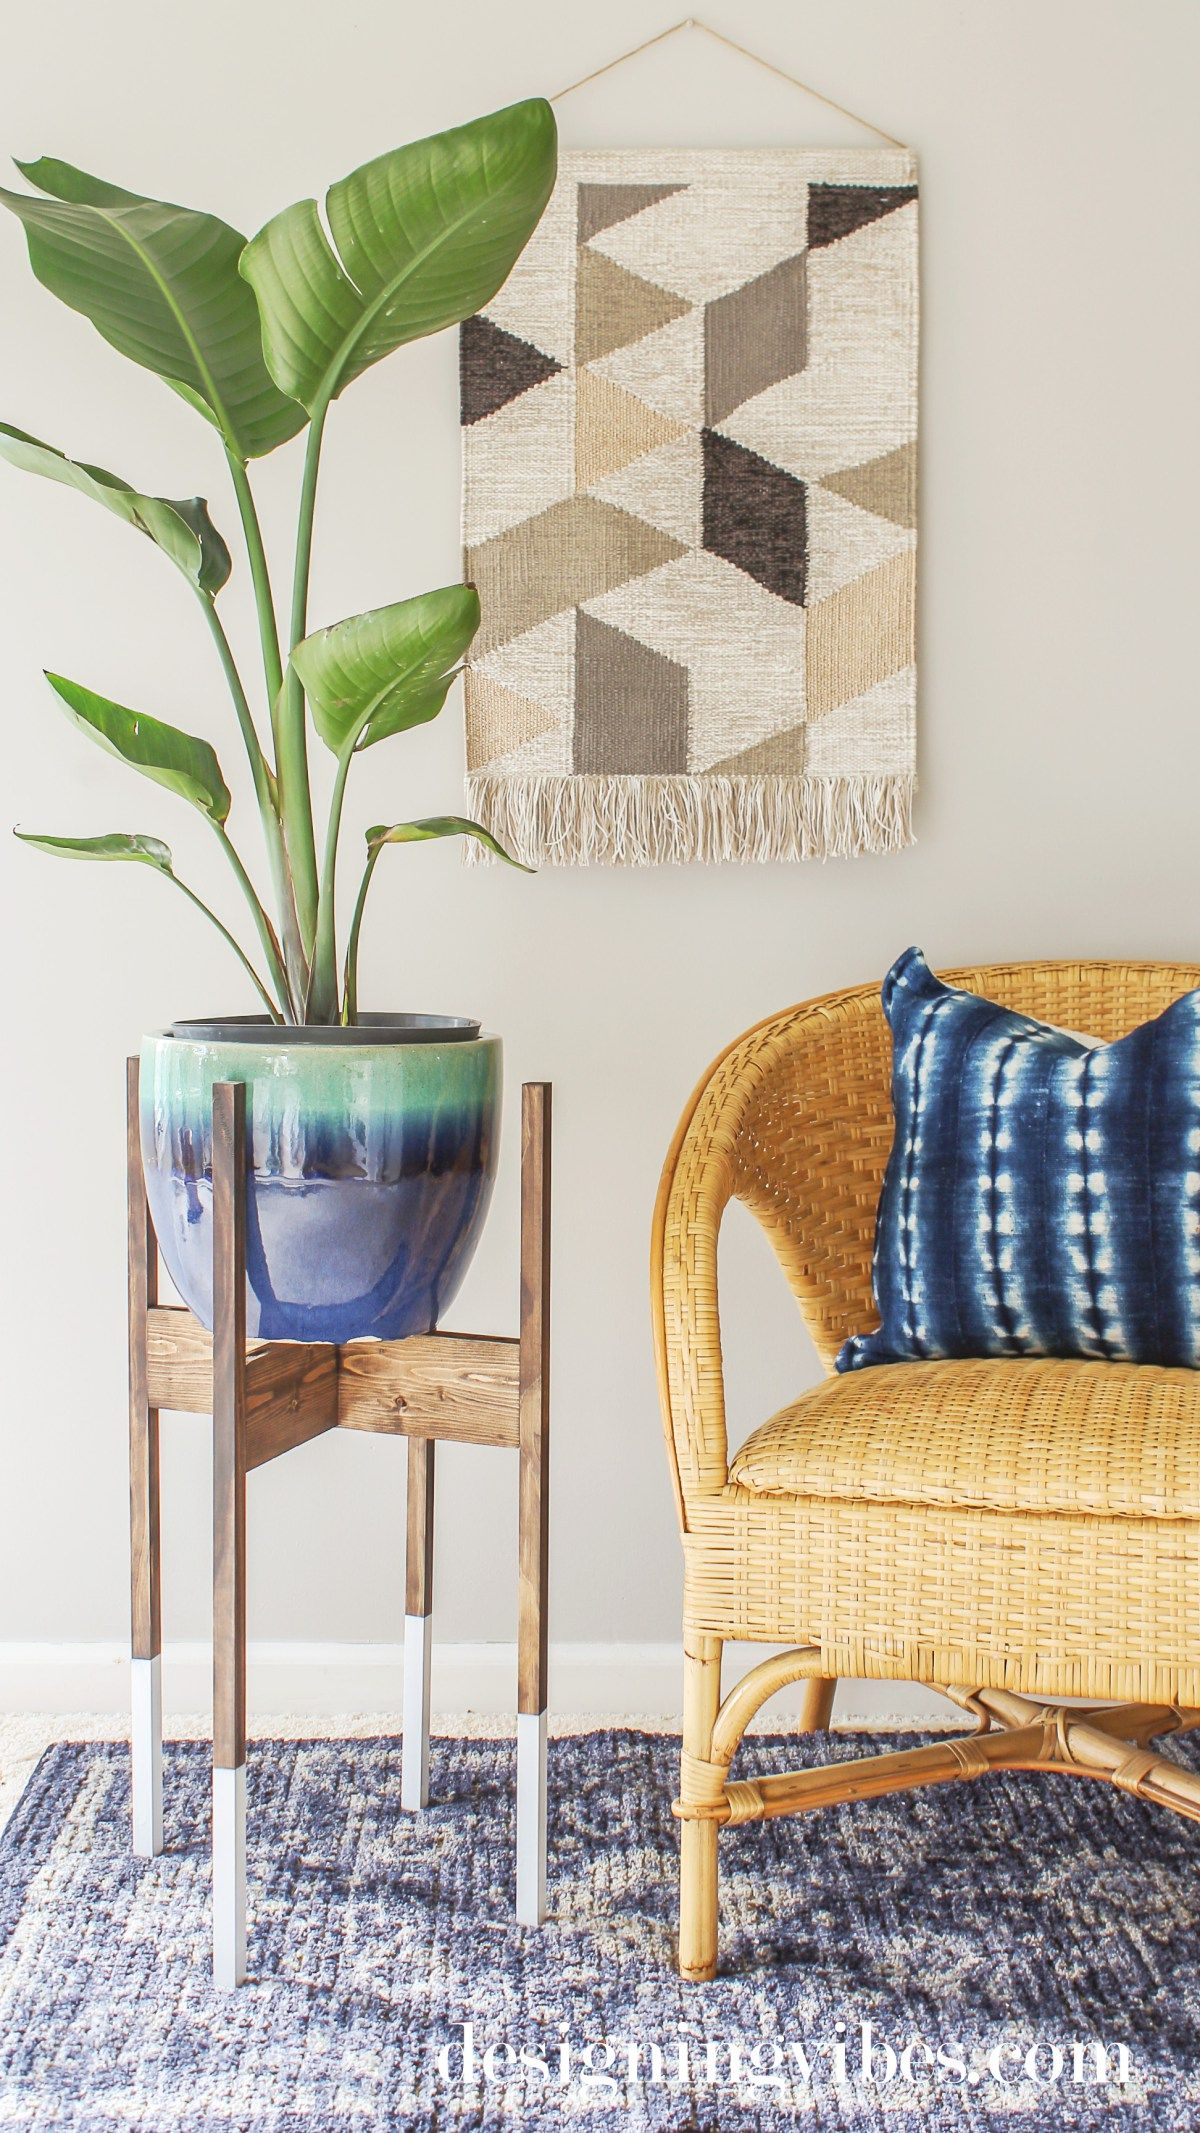 DIY Mid-Century Modern Plant Stand with Wood Dip-Dyed Legs #diyplantstand